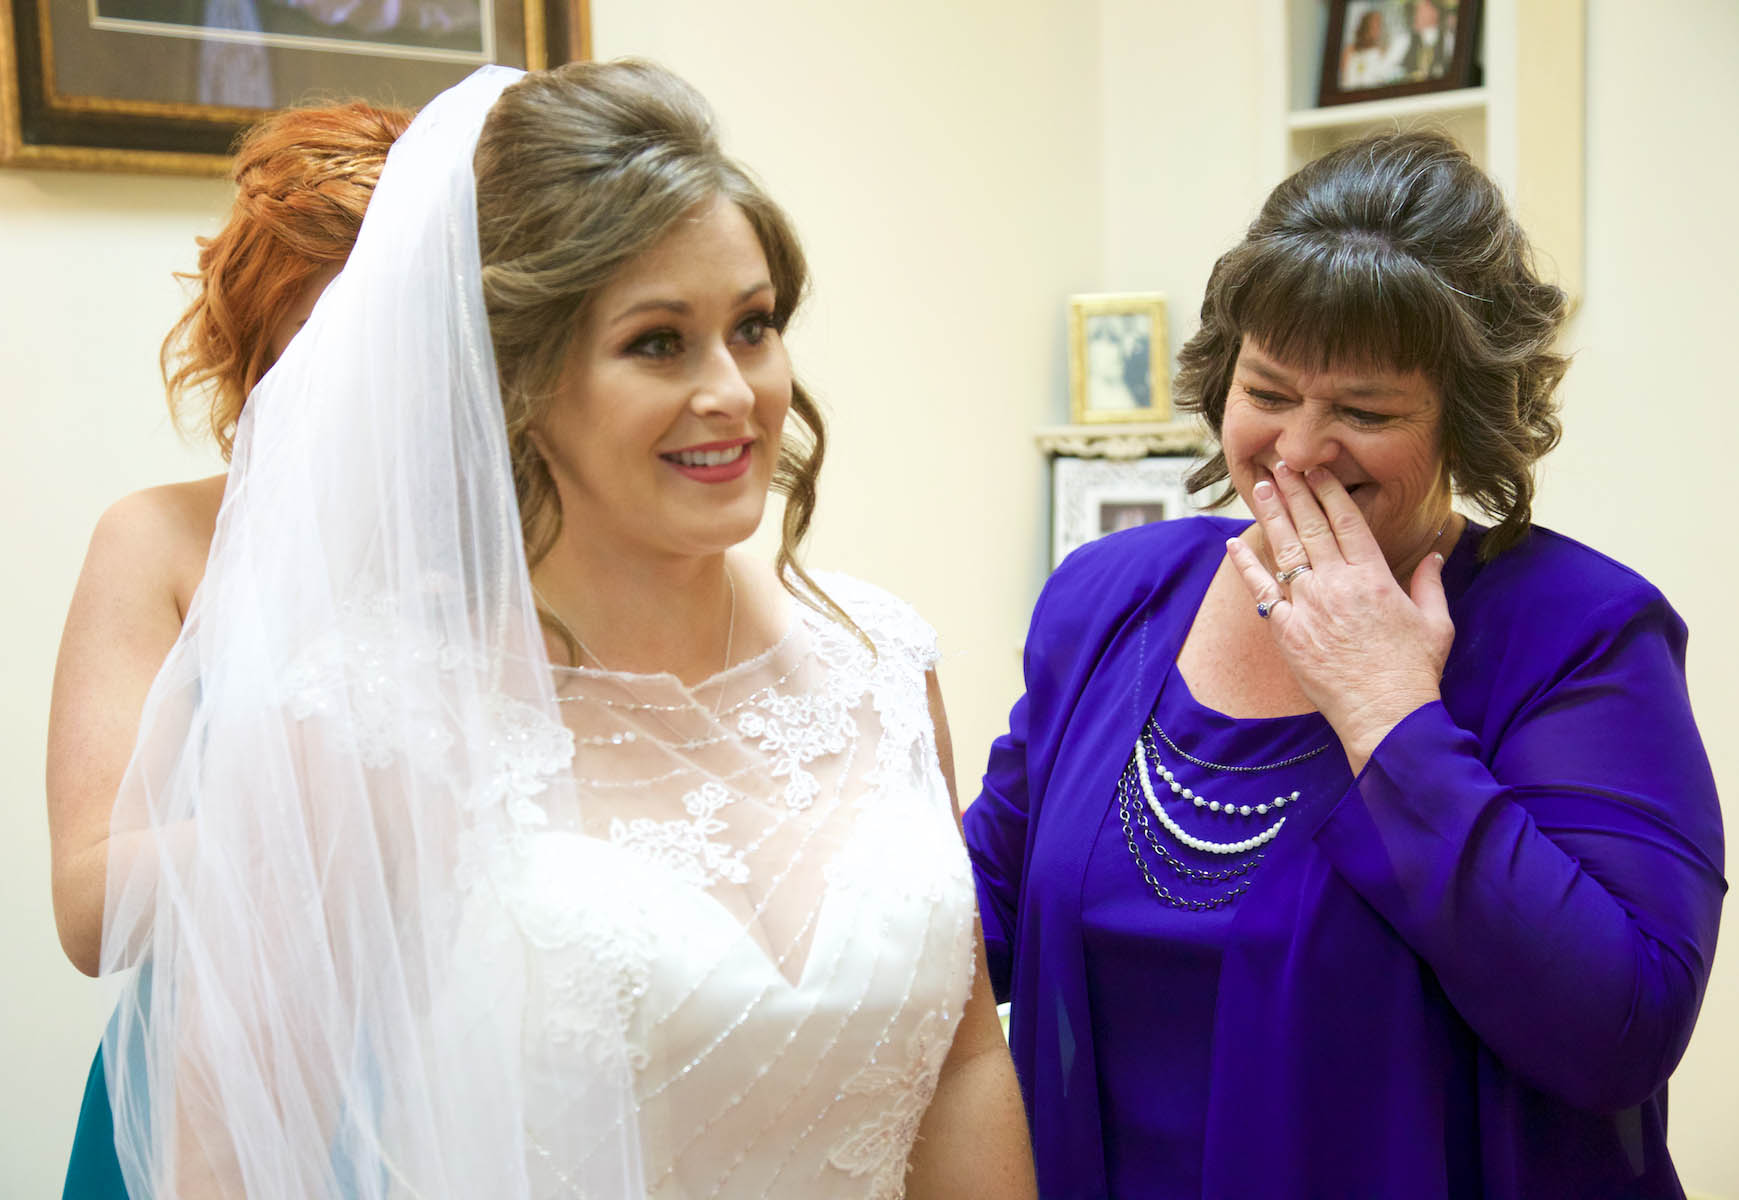 Alissa's mom Sherrie reacts as the bride has her dress buttoned by Laura, the Maid of Honor. Wedding pictures by Tiffany & Steve of Warmowski Photography.